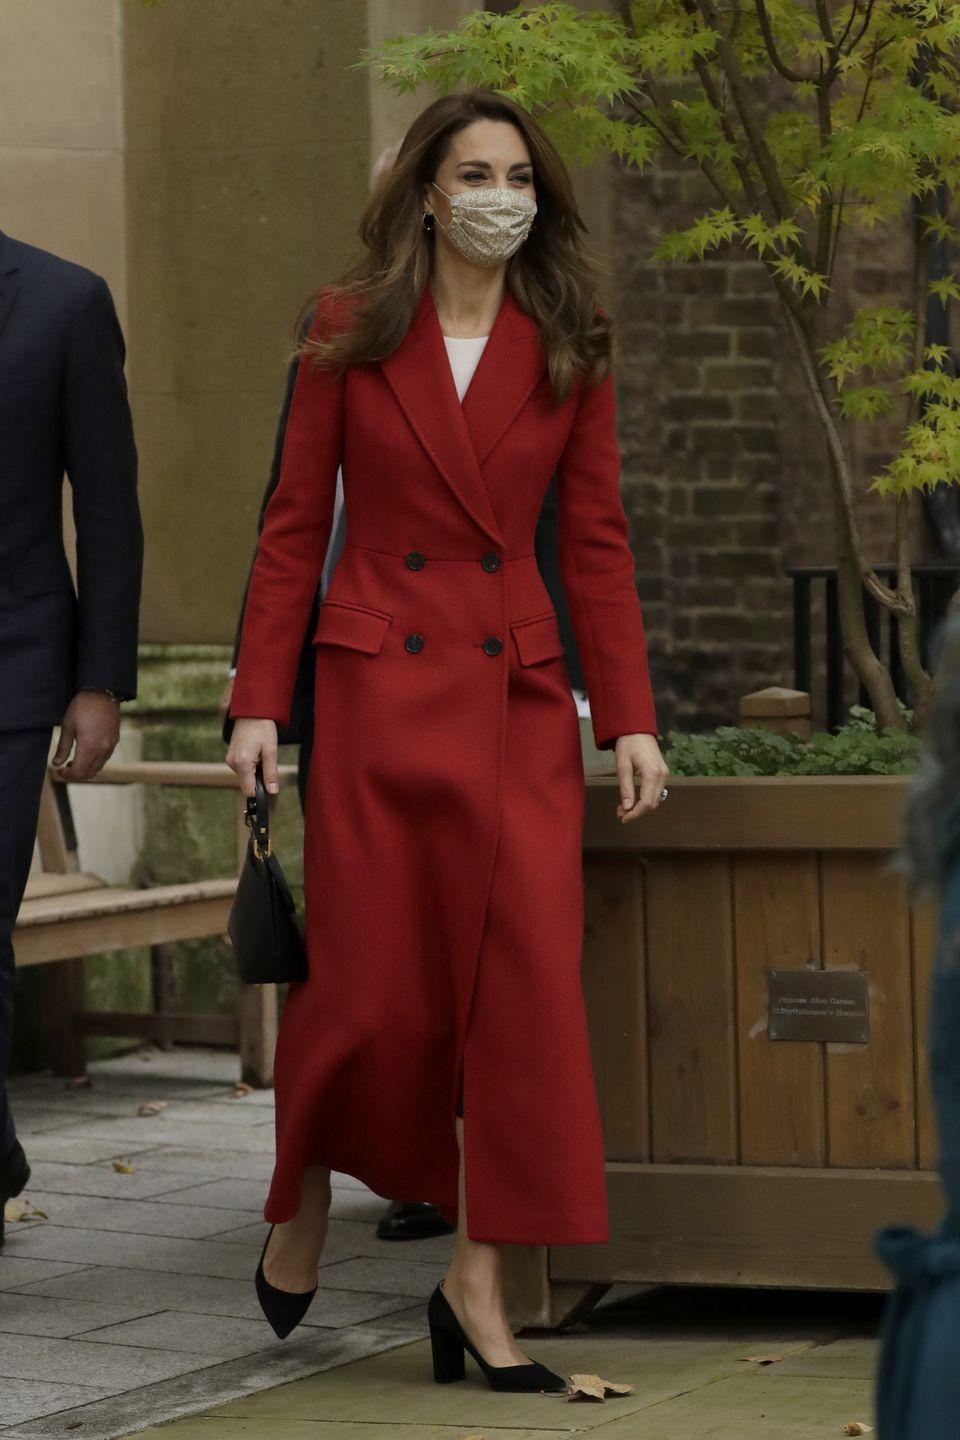 """<p>Kate wore a <a href=""""https://www.townandcountrymag.com/society/tradition/a34425134/kate-middleton-red-coat-alexander-mcqueen-hold-still-photo/"""" rel=""""nofollow noopener"""" target=""""_blank"""" data-ylk=""""slk:long, red, double-breasted coat"""" class=""""link rapid-noclick-resp"""">long, red, double-breasted coat</a> from the designer for the launch of her 'Hold Still' community photography project. The red hue was perfect for the autumn event. </p>"""